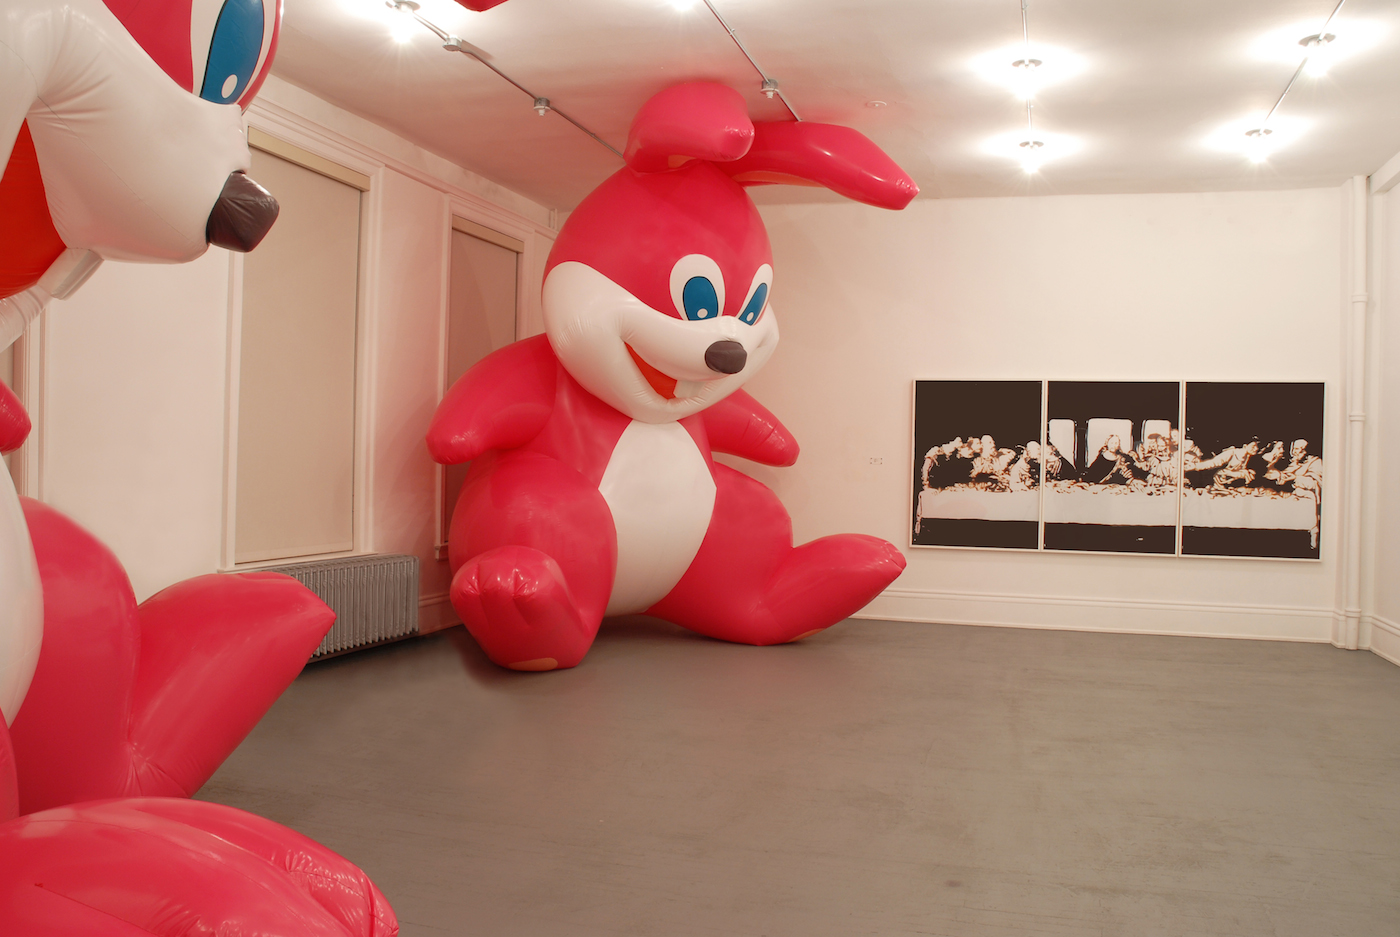 """Momoyo Torimitsu, """"Somehow I Don't Feel Comfortable"""" (2000, left), two rubber inflatable balloons, ventilators, 16 x 10 ft in diameter each and Vik Muniz, """"Milan (Last Supper)"""" (right), Cibachrome, 3 panels, 48 x 60 in each (all photos courtesy the Dikeou Collection, Denver)"""